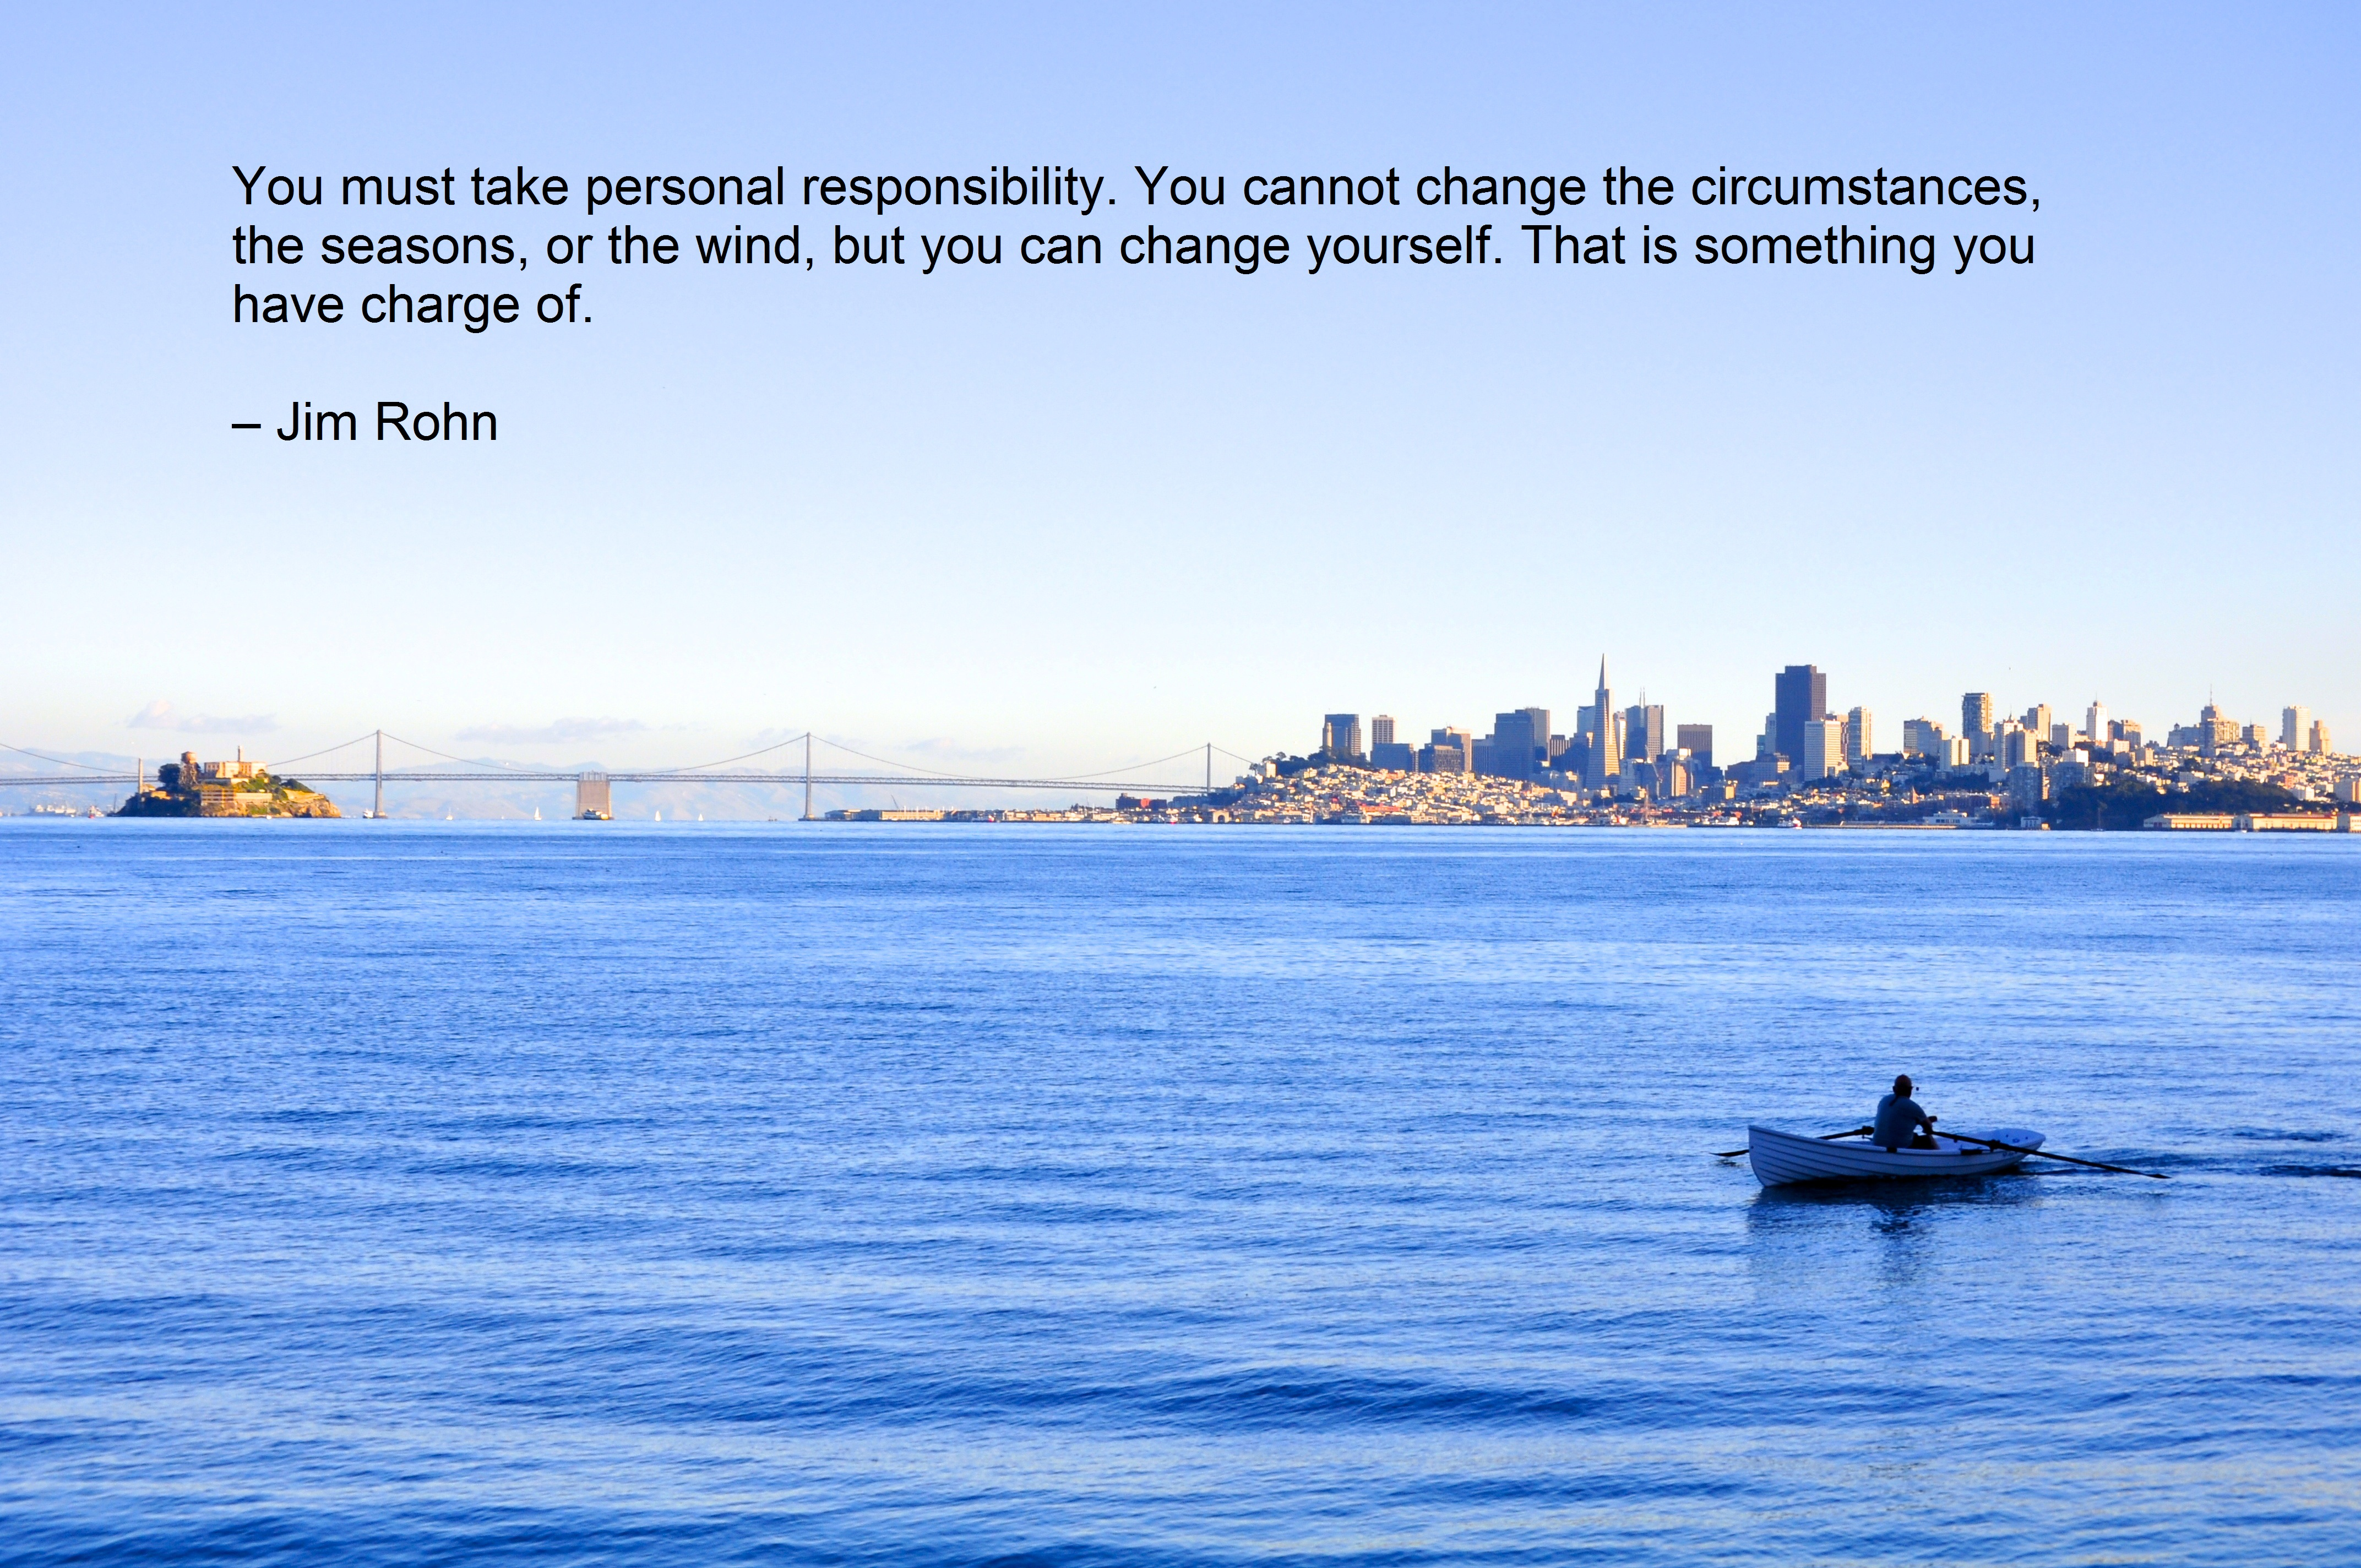 You must take personal responsibility. You cannot change the circumstances, the seasons, or the wind, but you can change yourself. That is something you have charge of. – Jim Rohn